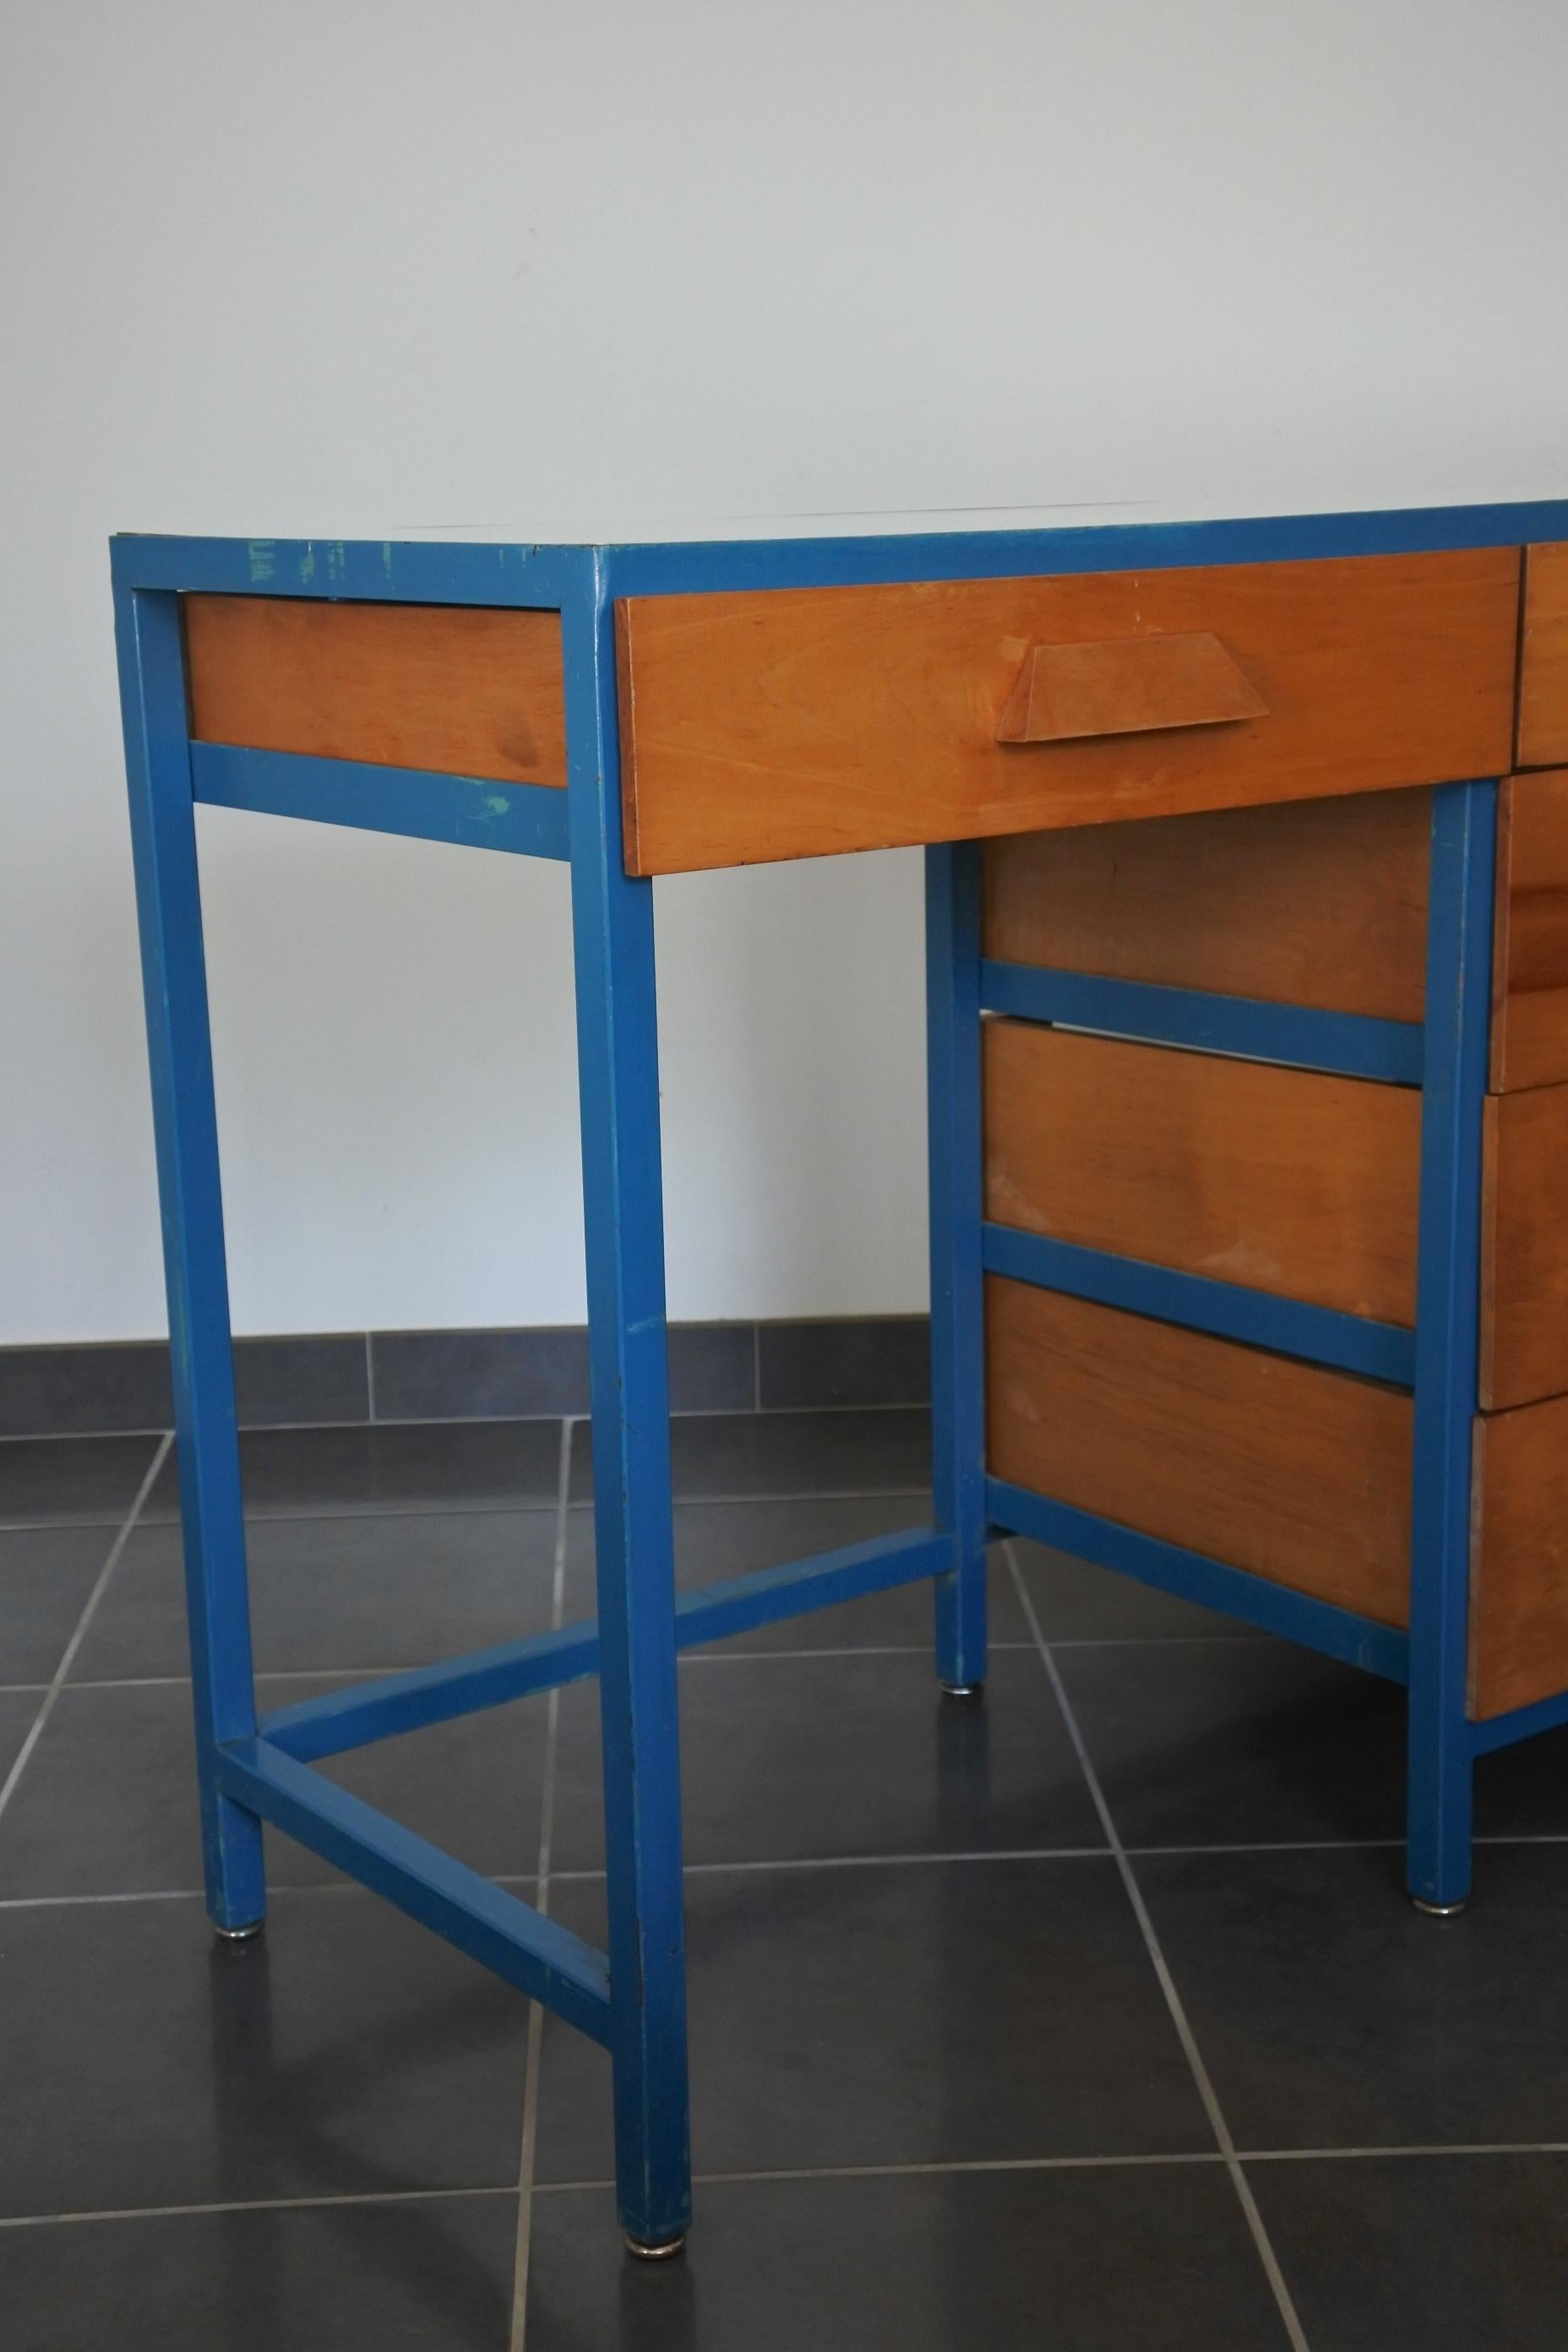 Surprising Steel Frame And Maple Vanity And Dresser Attributed To Vista Of California Usa Alphanode Cool Chair Designs And Ideas Alphanodeonline